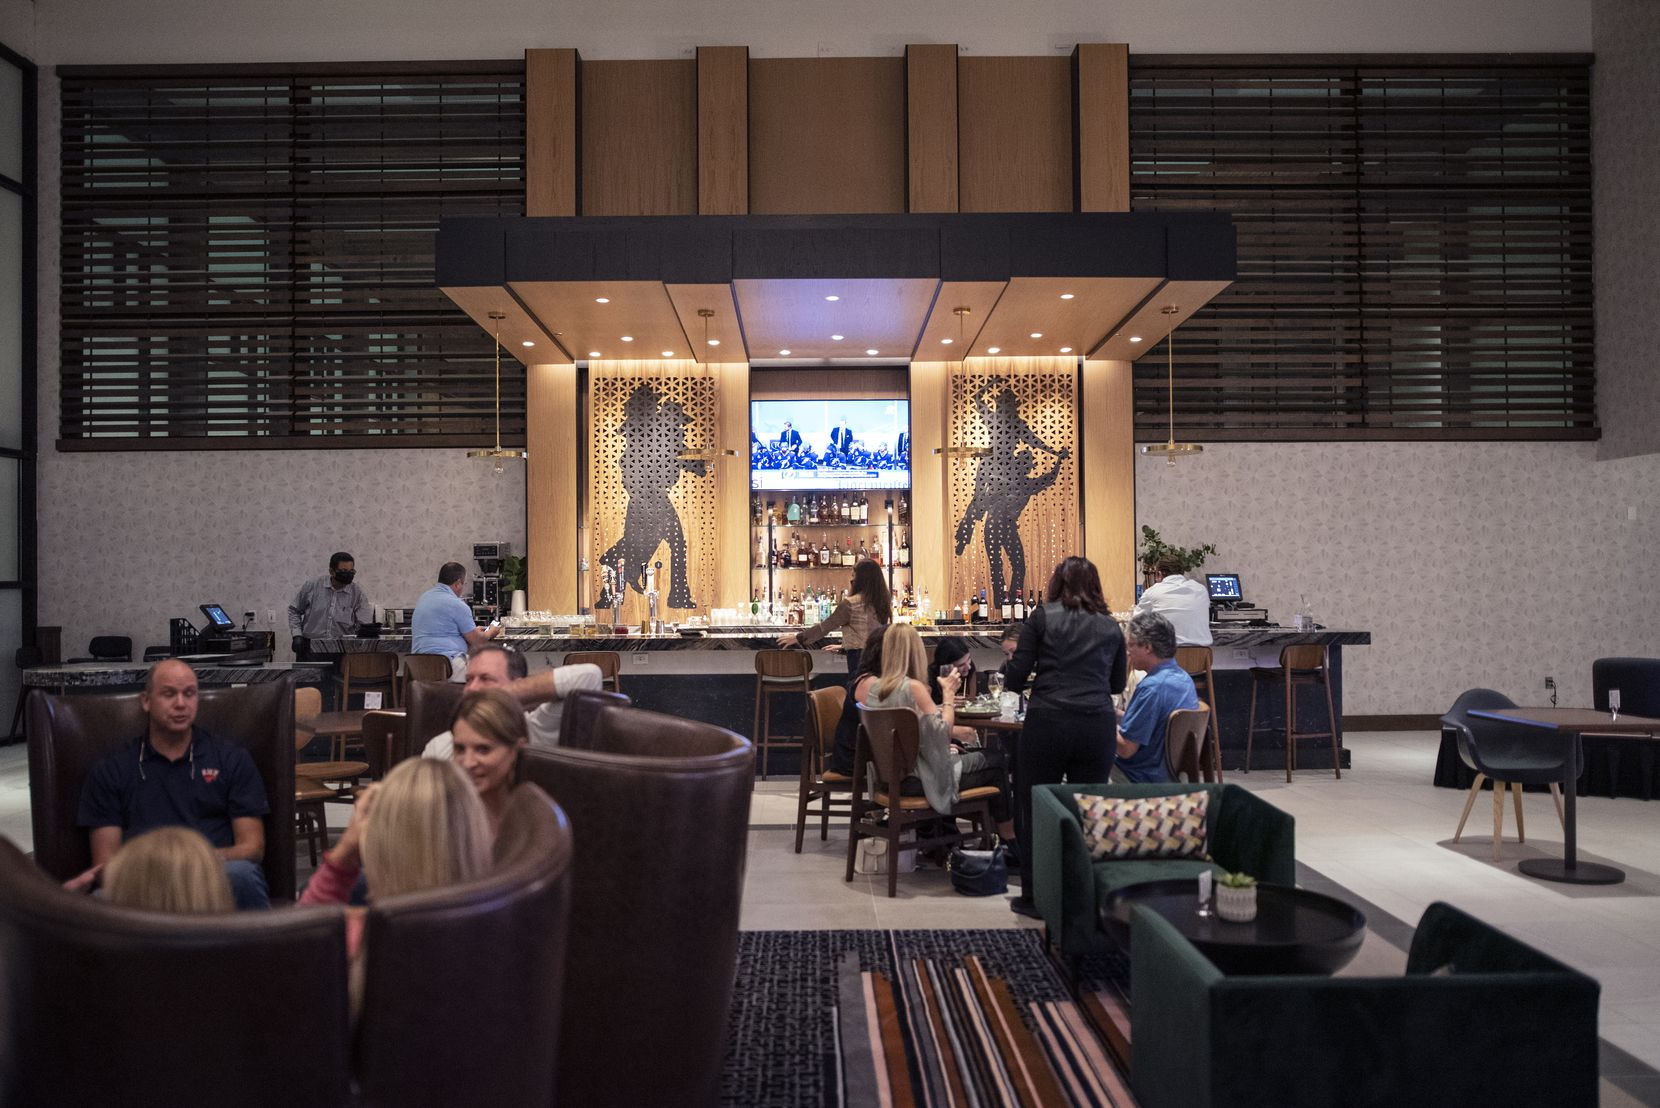 The main dining area at Seely's Mill is located inside the Beeman Hotel in Dallas.